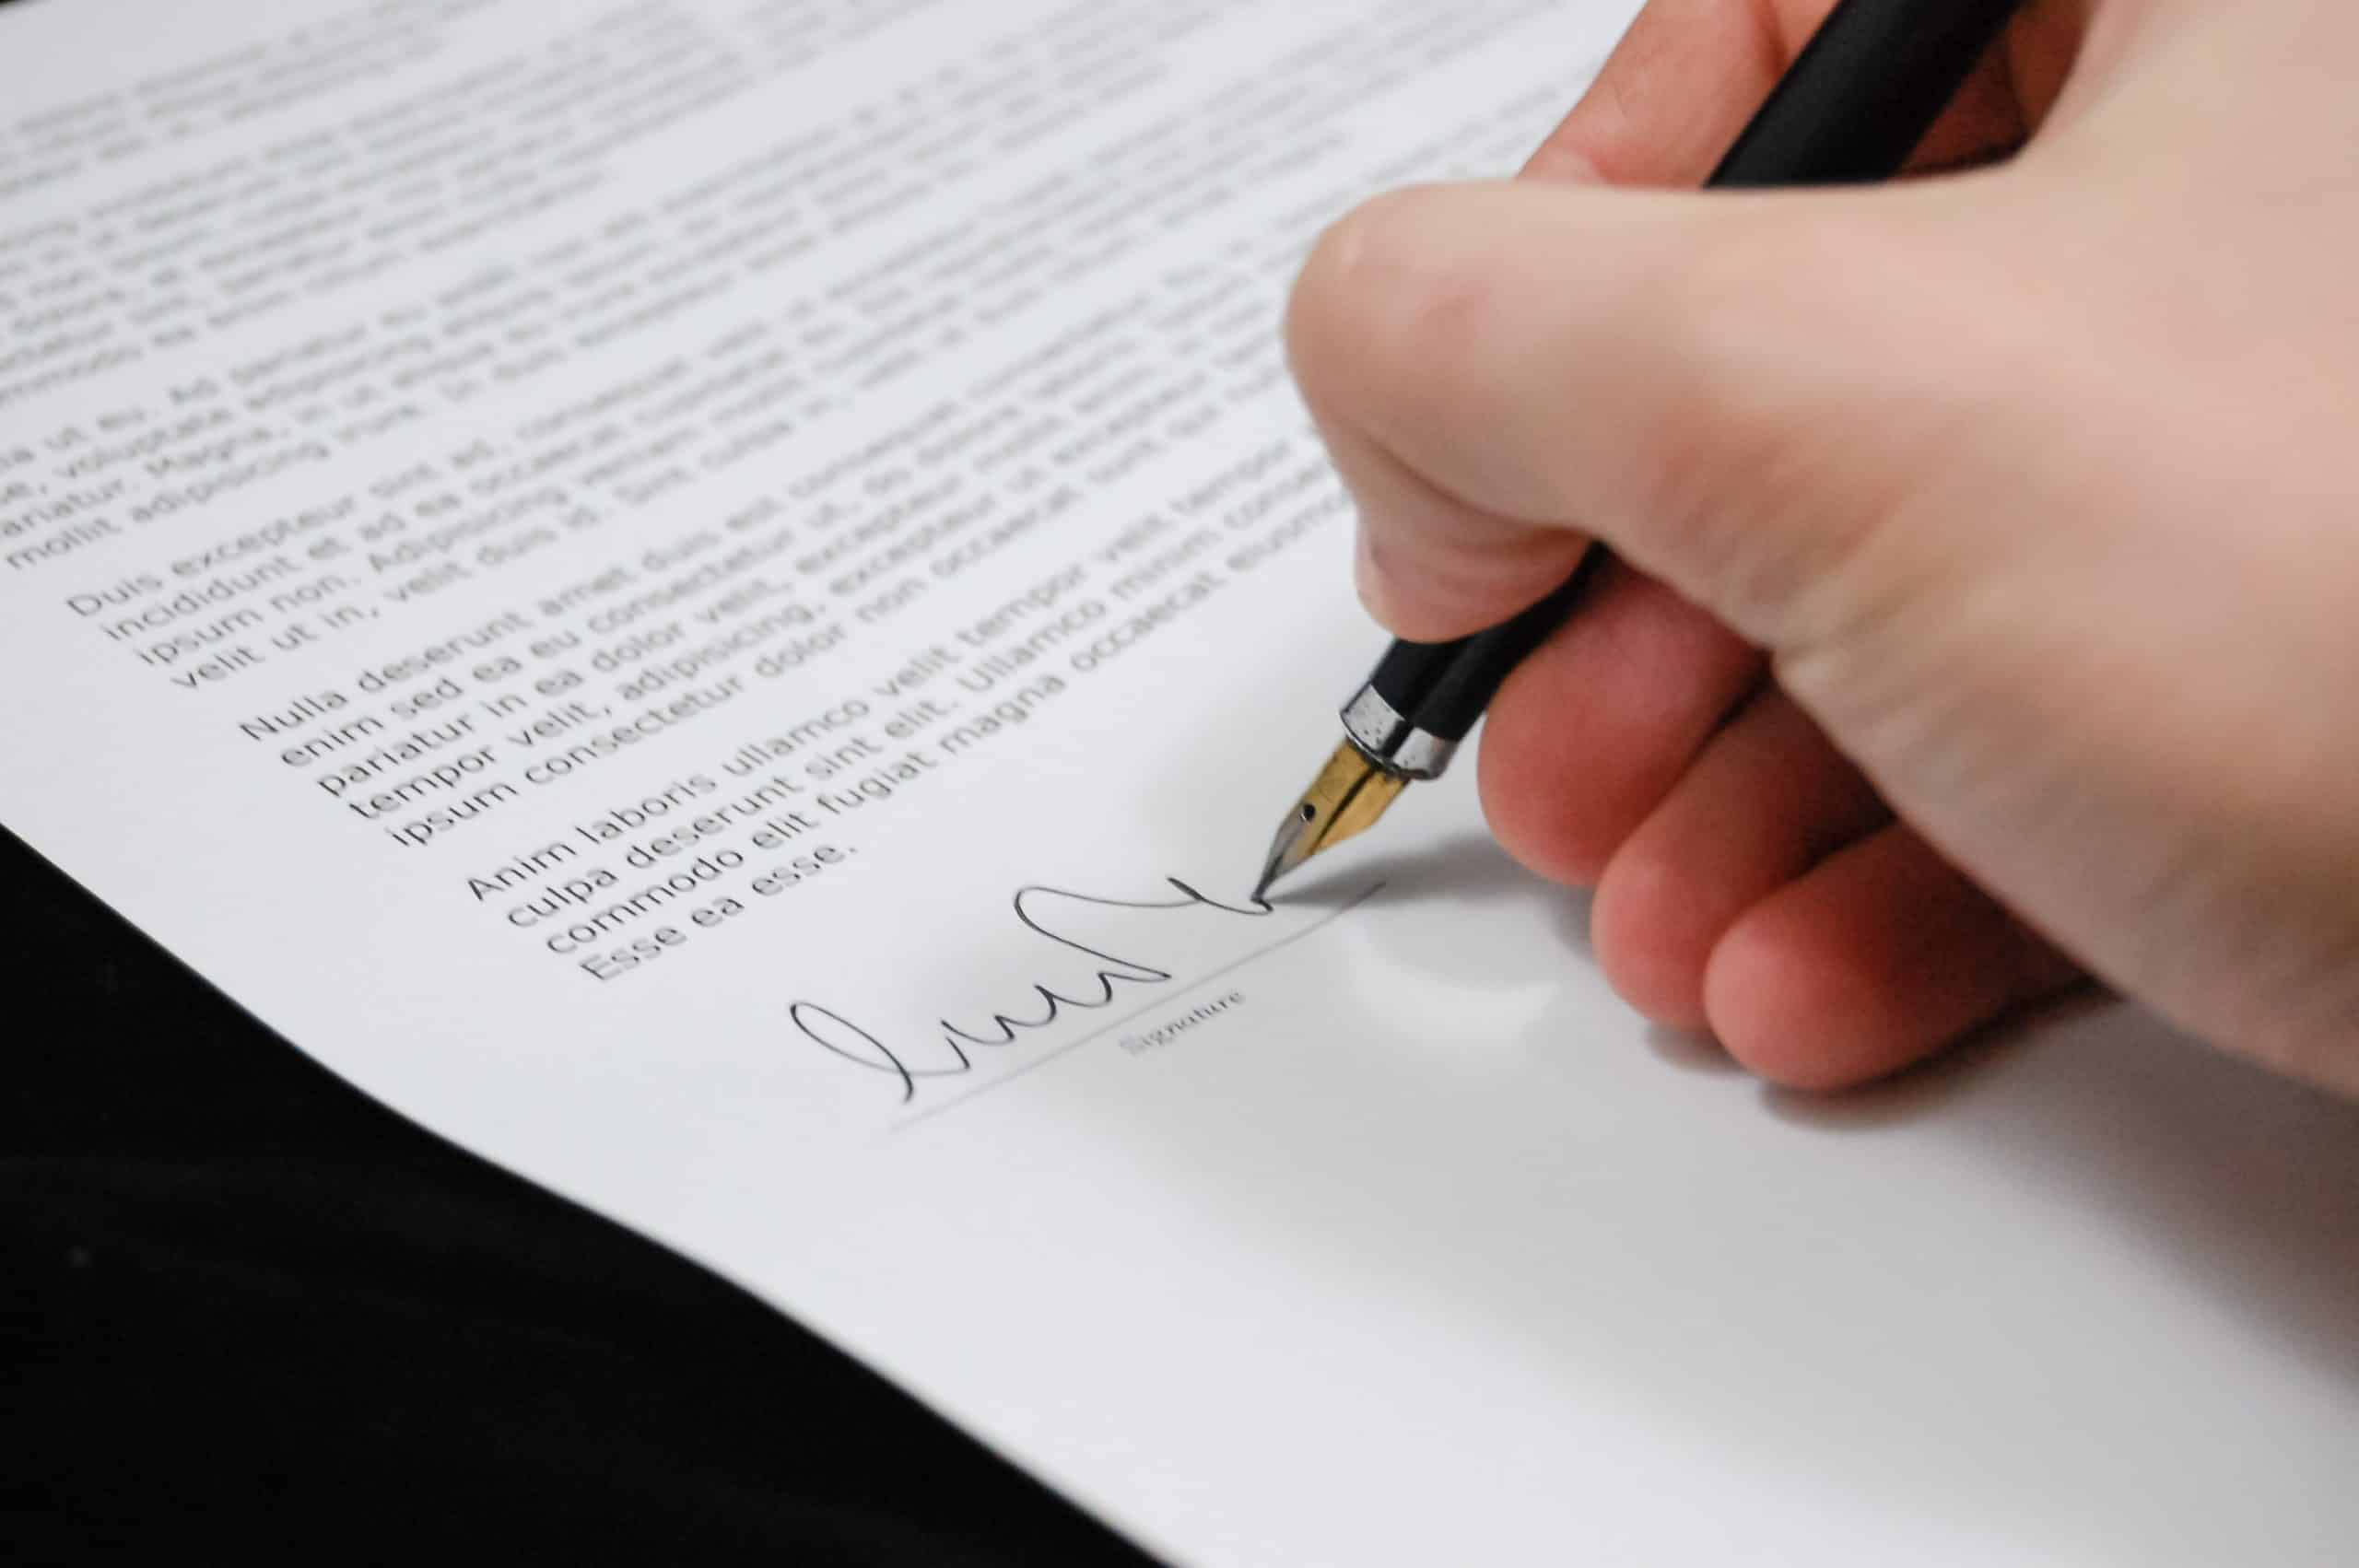 Advantages and disadvantages of revocable vs irrevocable trusts.